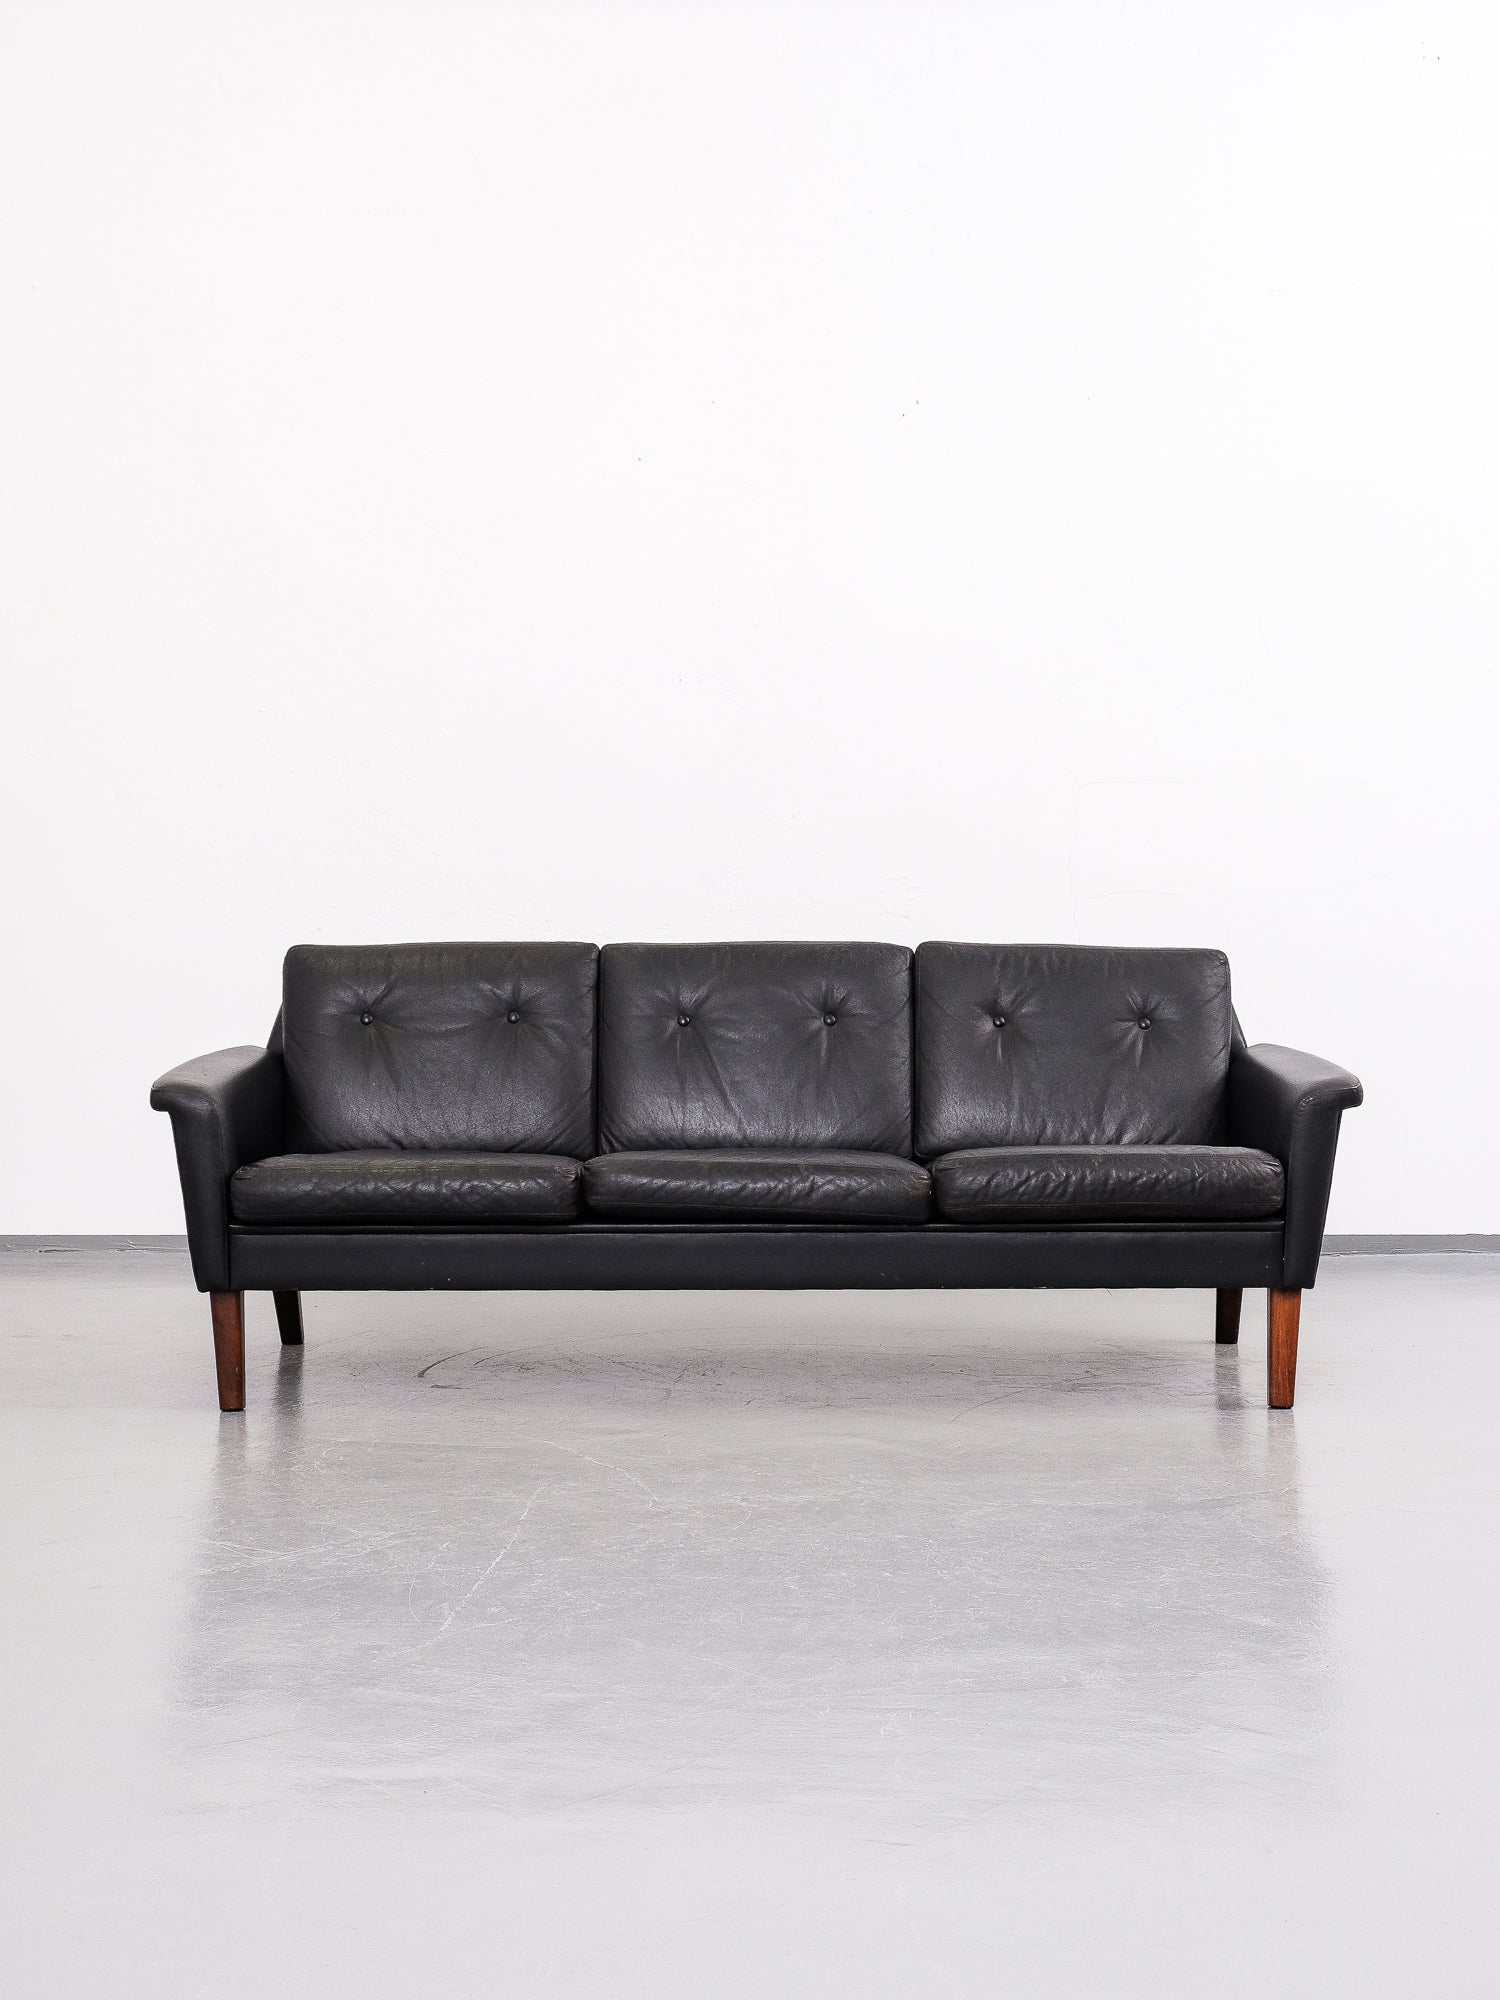 Swedish Black Leather 3-Seater Sofa, 1960s